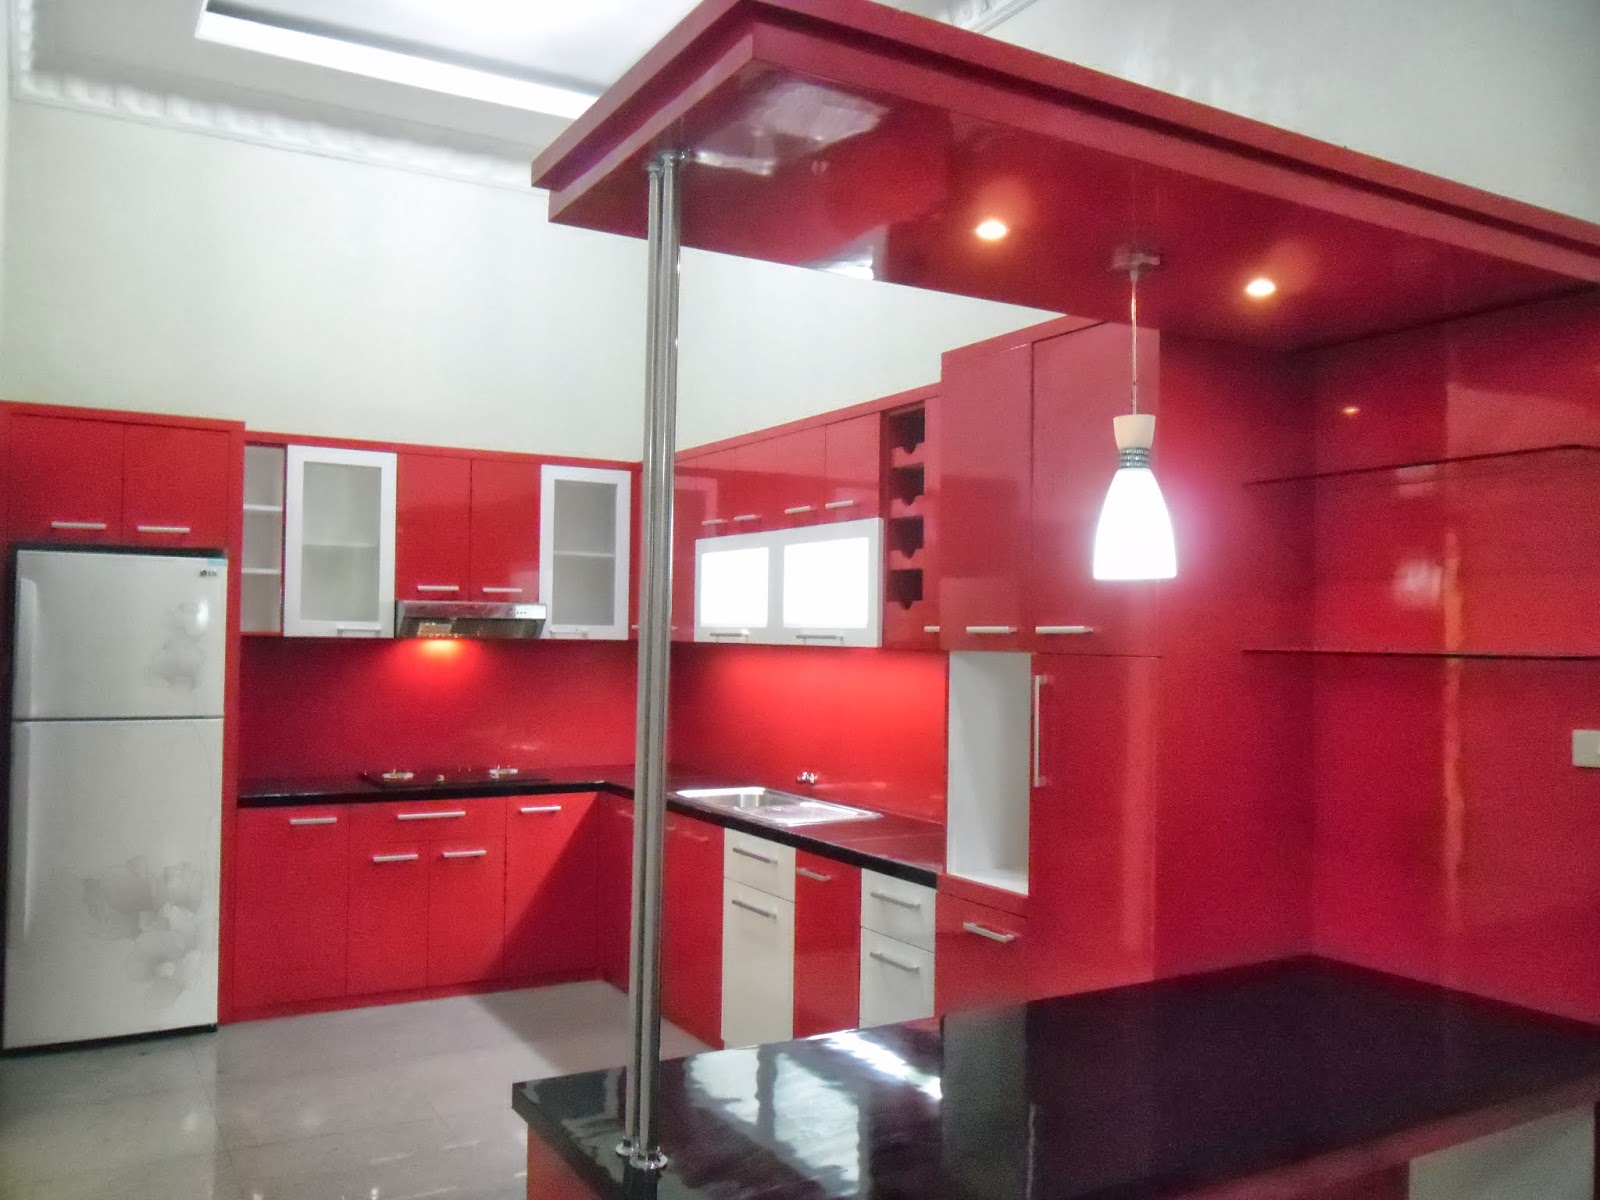 Kitchen Set U Shape (Bentuk U) - Kitchen Set Semarang - Custom Furniture Semarang